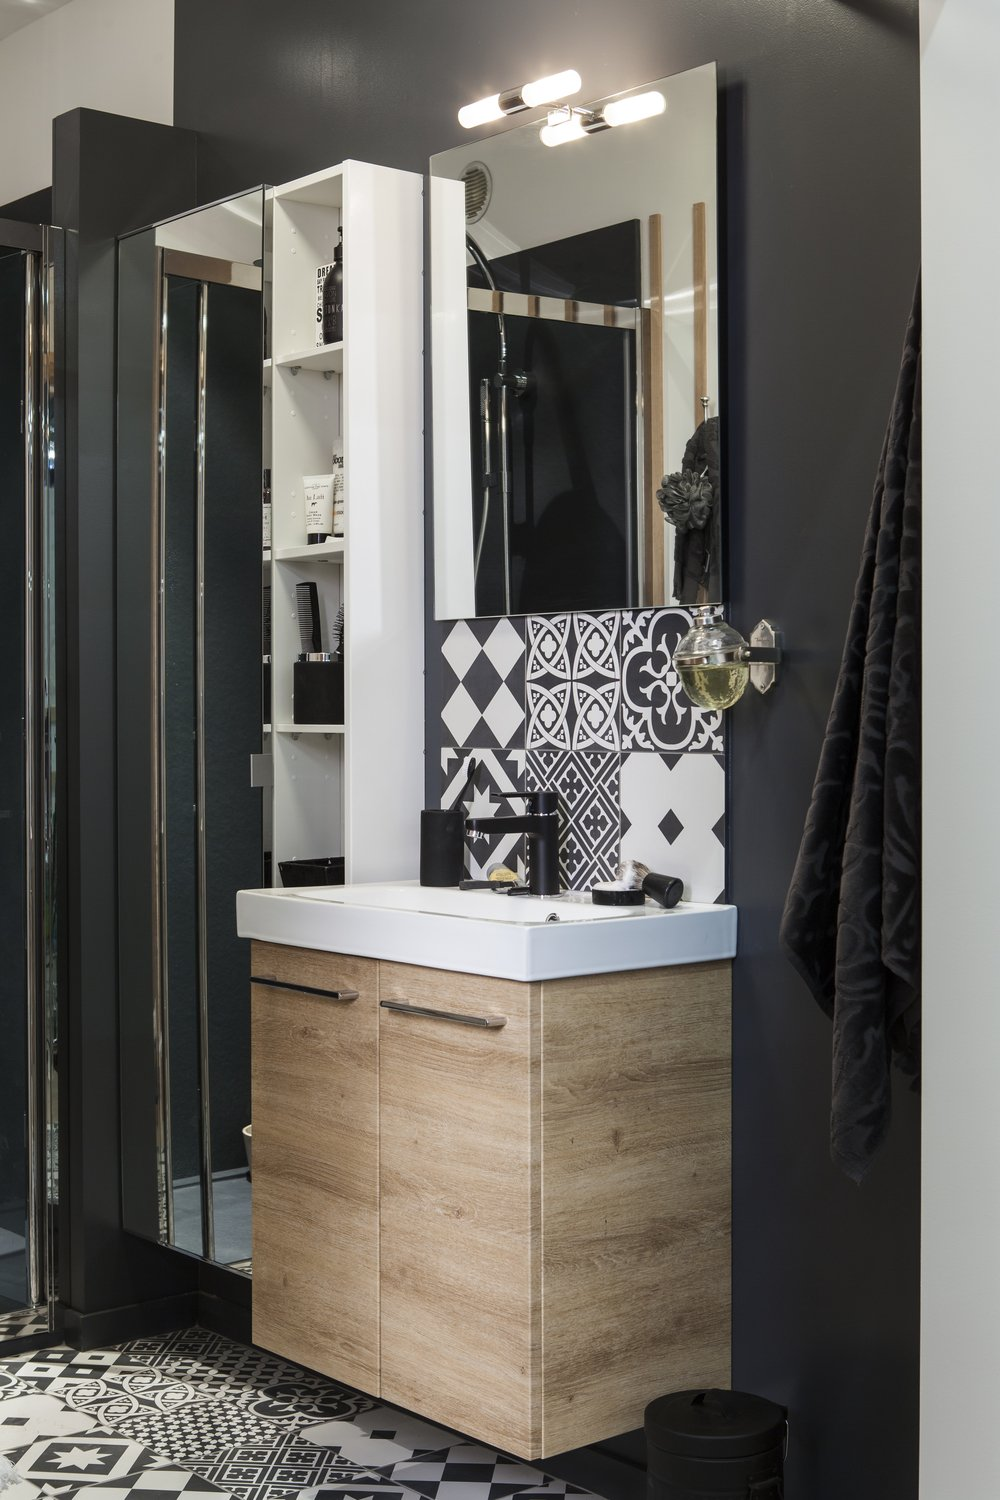 le coin toilette d 39 une salle de bains en noir et blanc leroy merlin. Black Bedroom Furniture Sets. Home Design Ideas